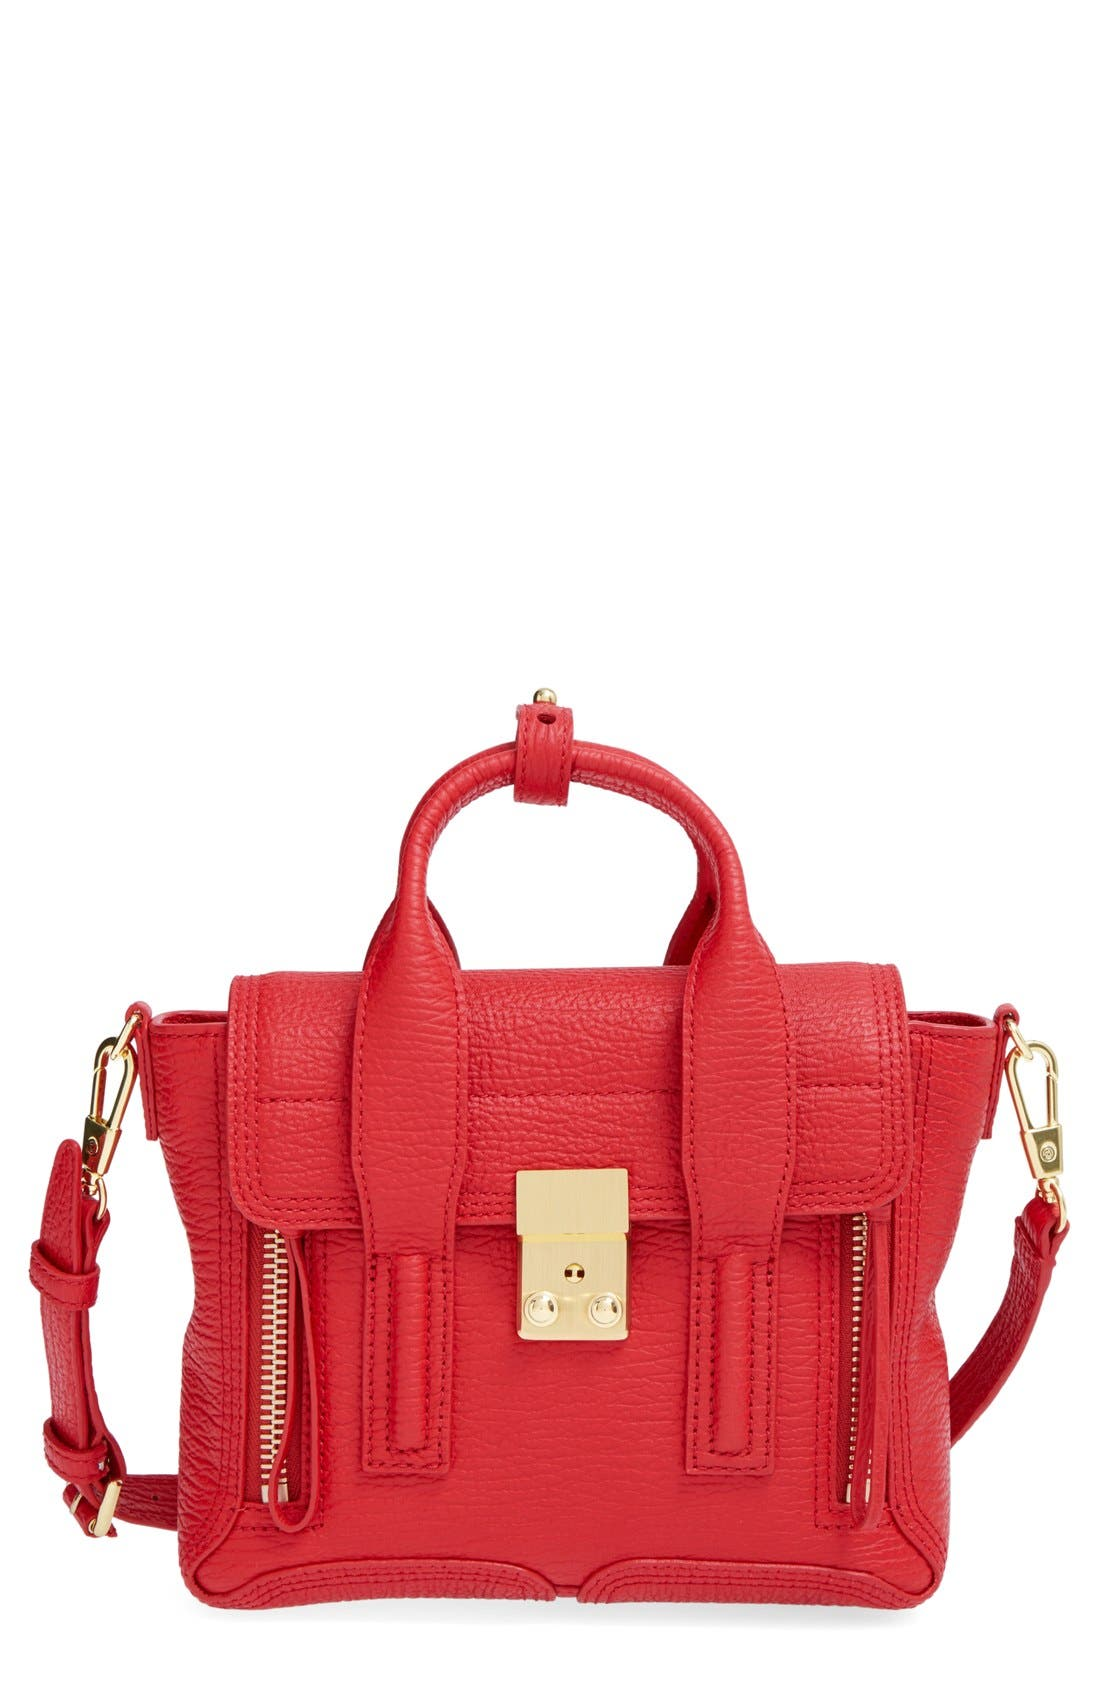 'Mini Pashli' Leather Satchel,                         Main,                         color, 600